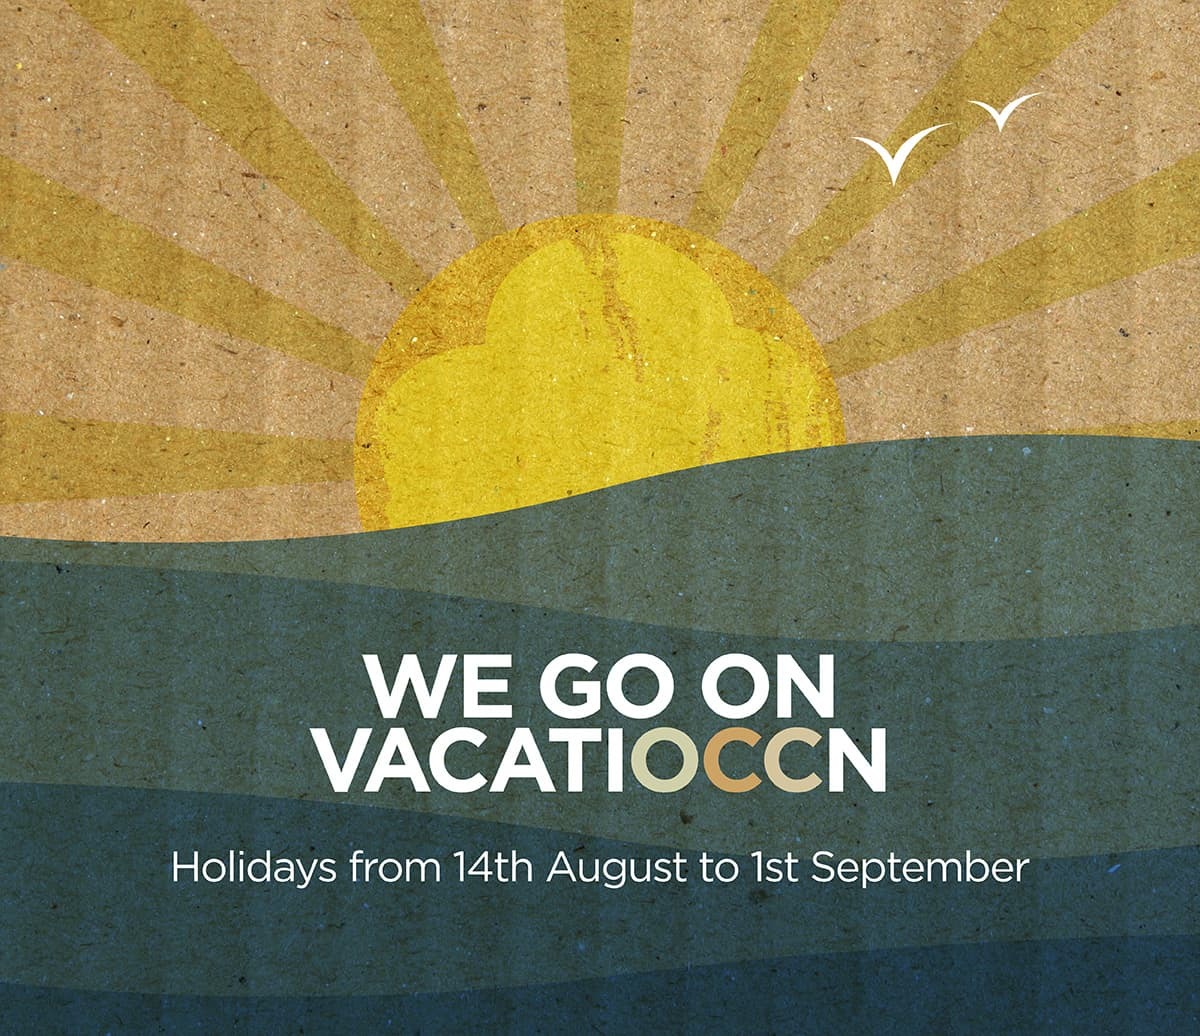 WE GO ON VACATIOCCN – Holidays from 14th August to 1st September.